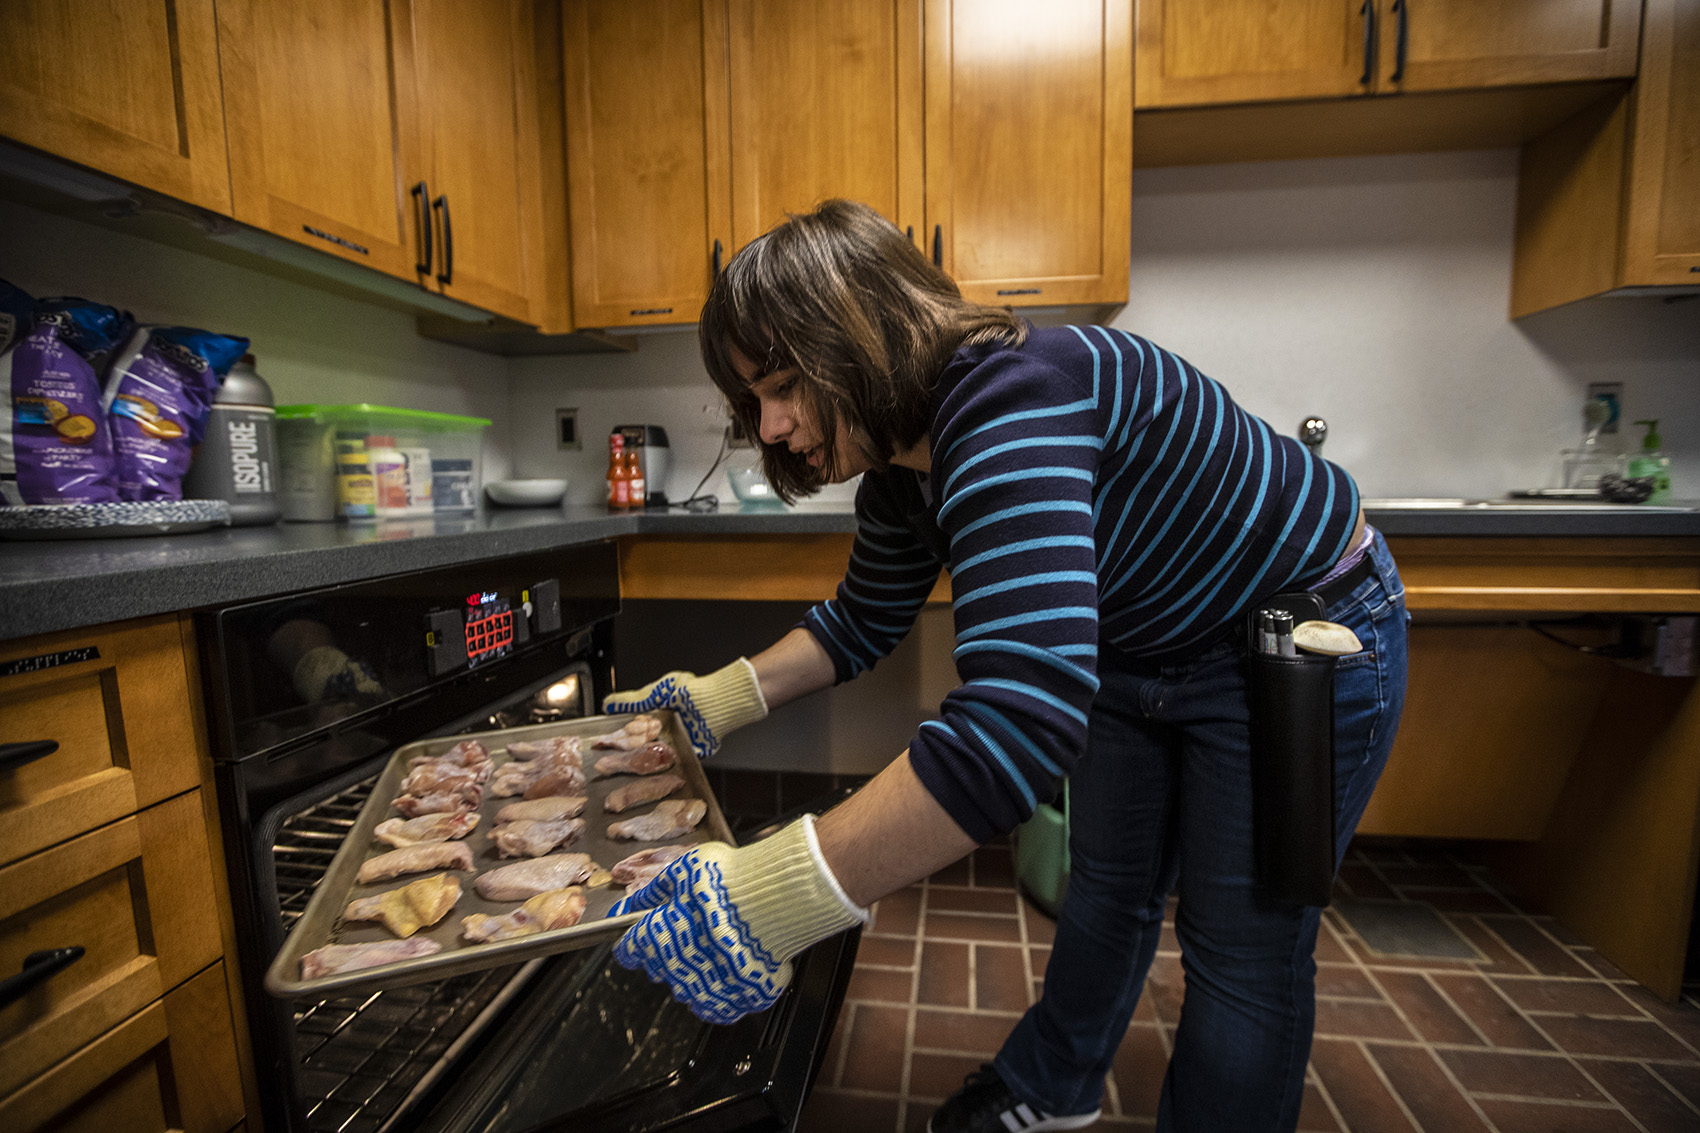 Haley Valente places the pan of chicken wings into the oven. (Jesse Costa/WBUR)